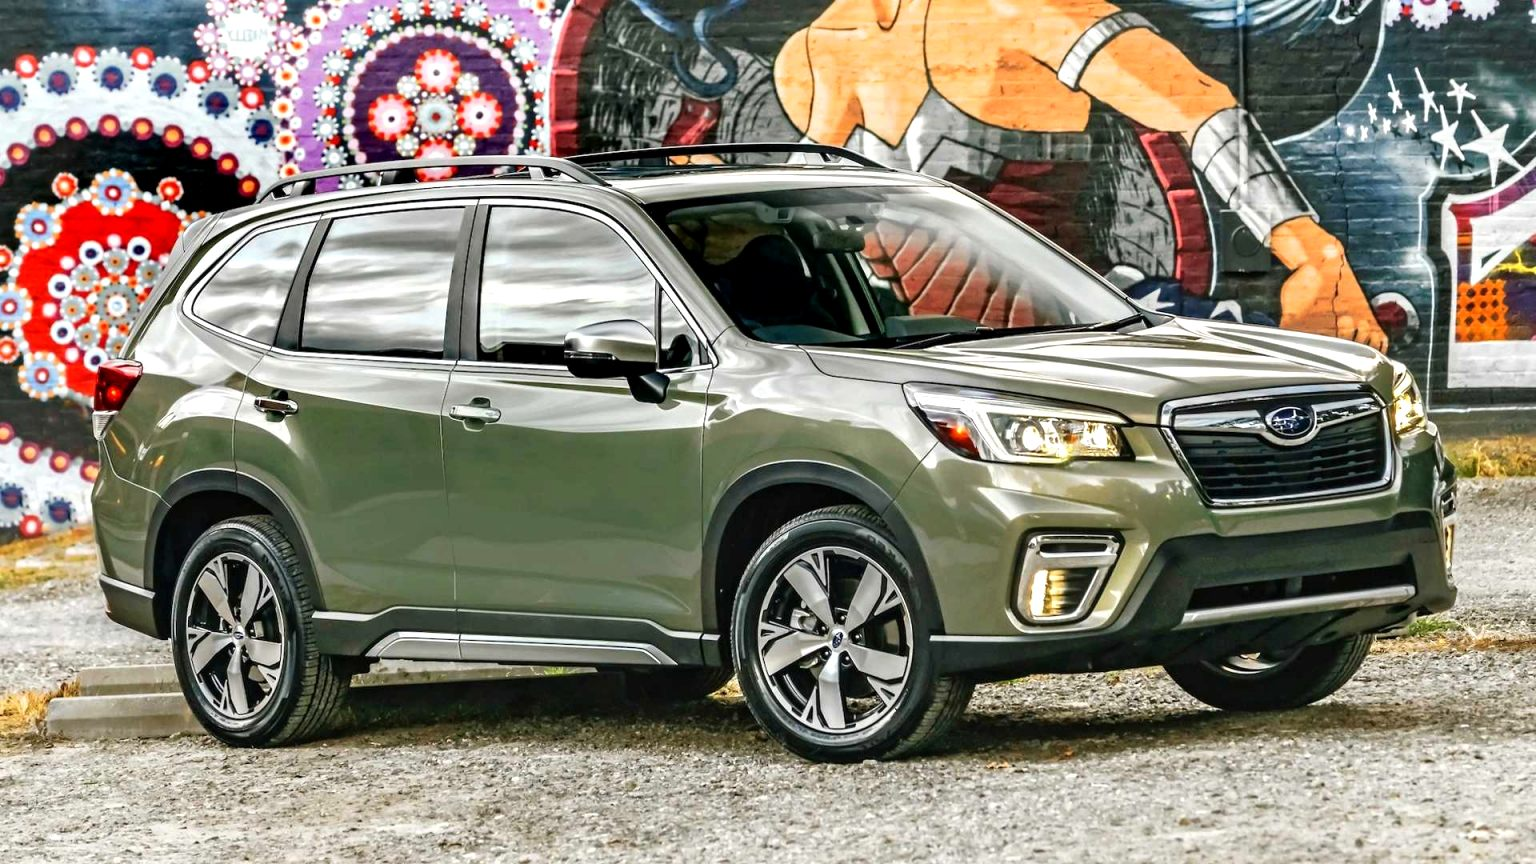 subaru touring 2020 Release Date and Concept